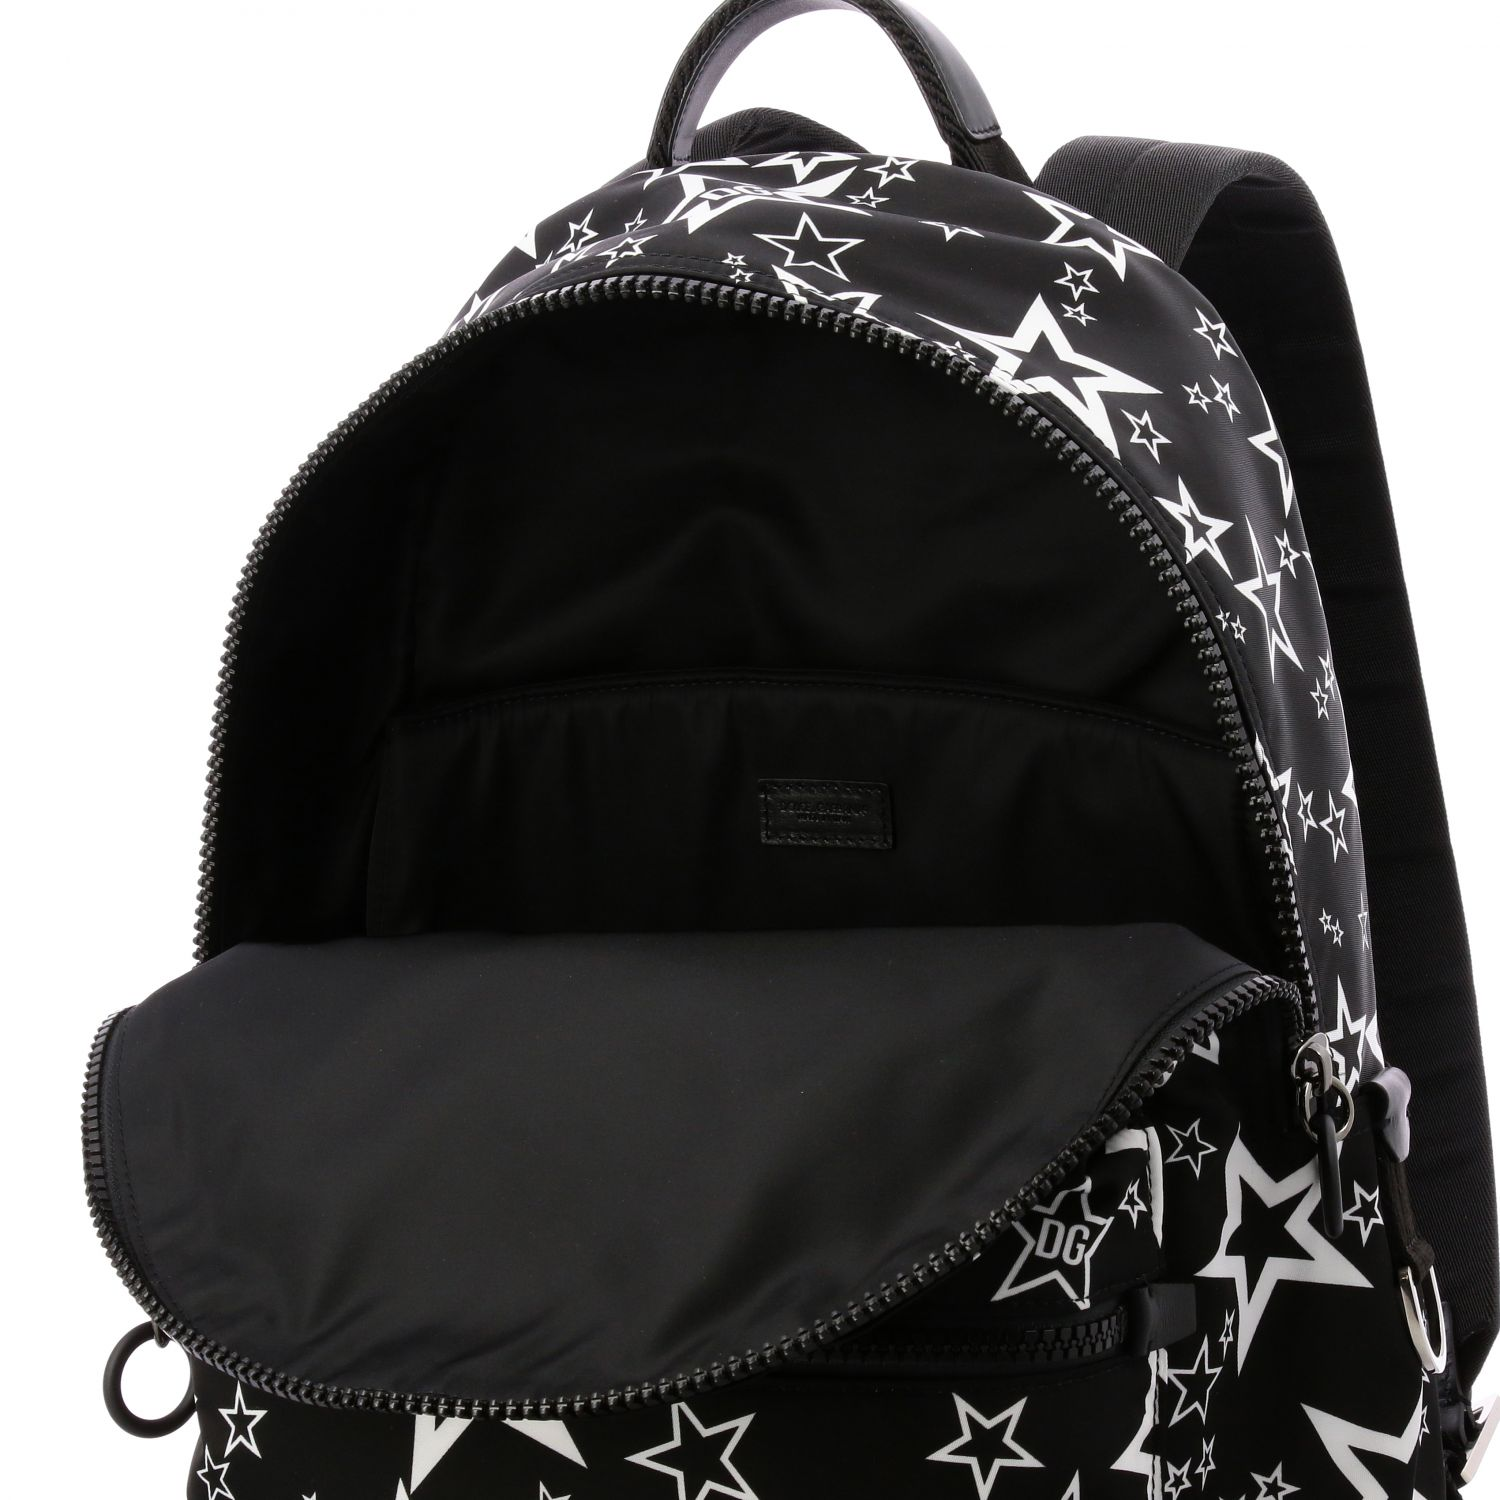 Backpack Dolce & Gabbana: Dolce & Gabbana canvas backpack with all over star print black 5